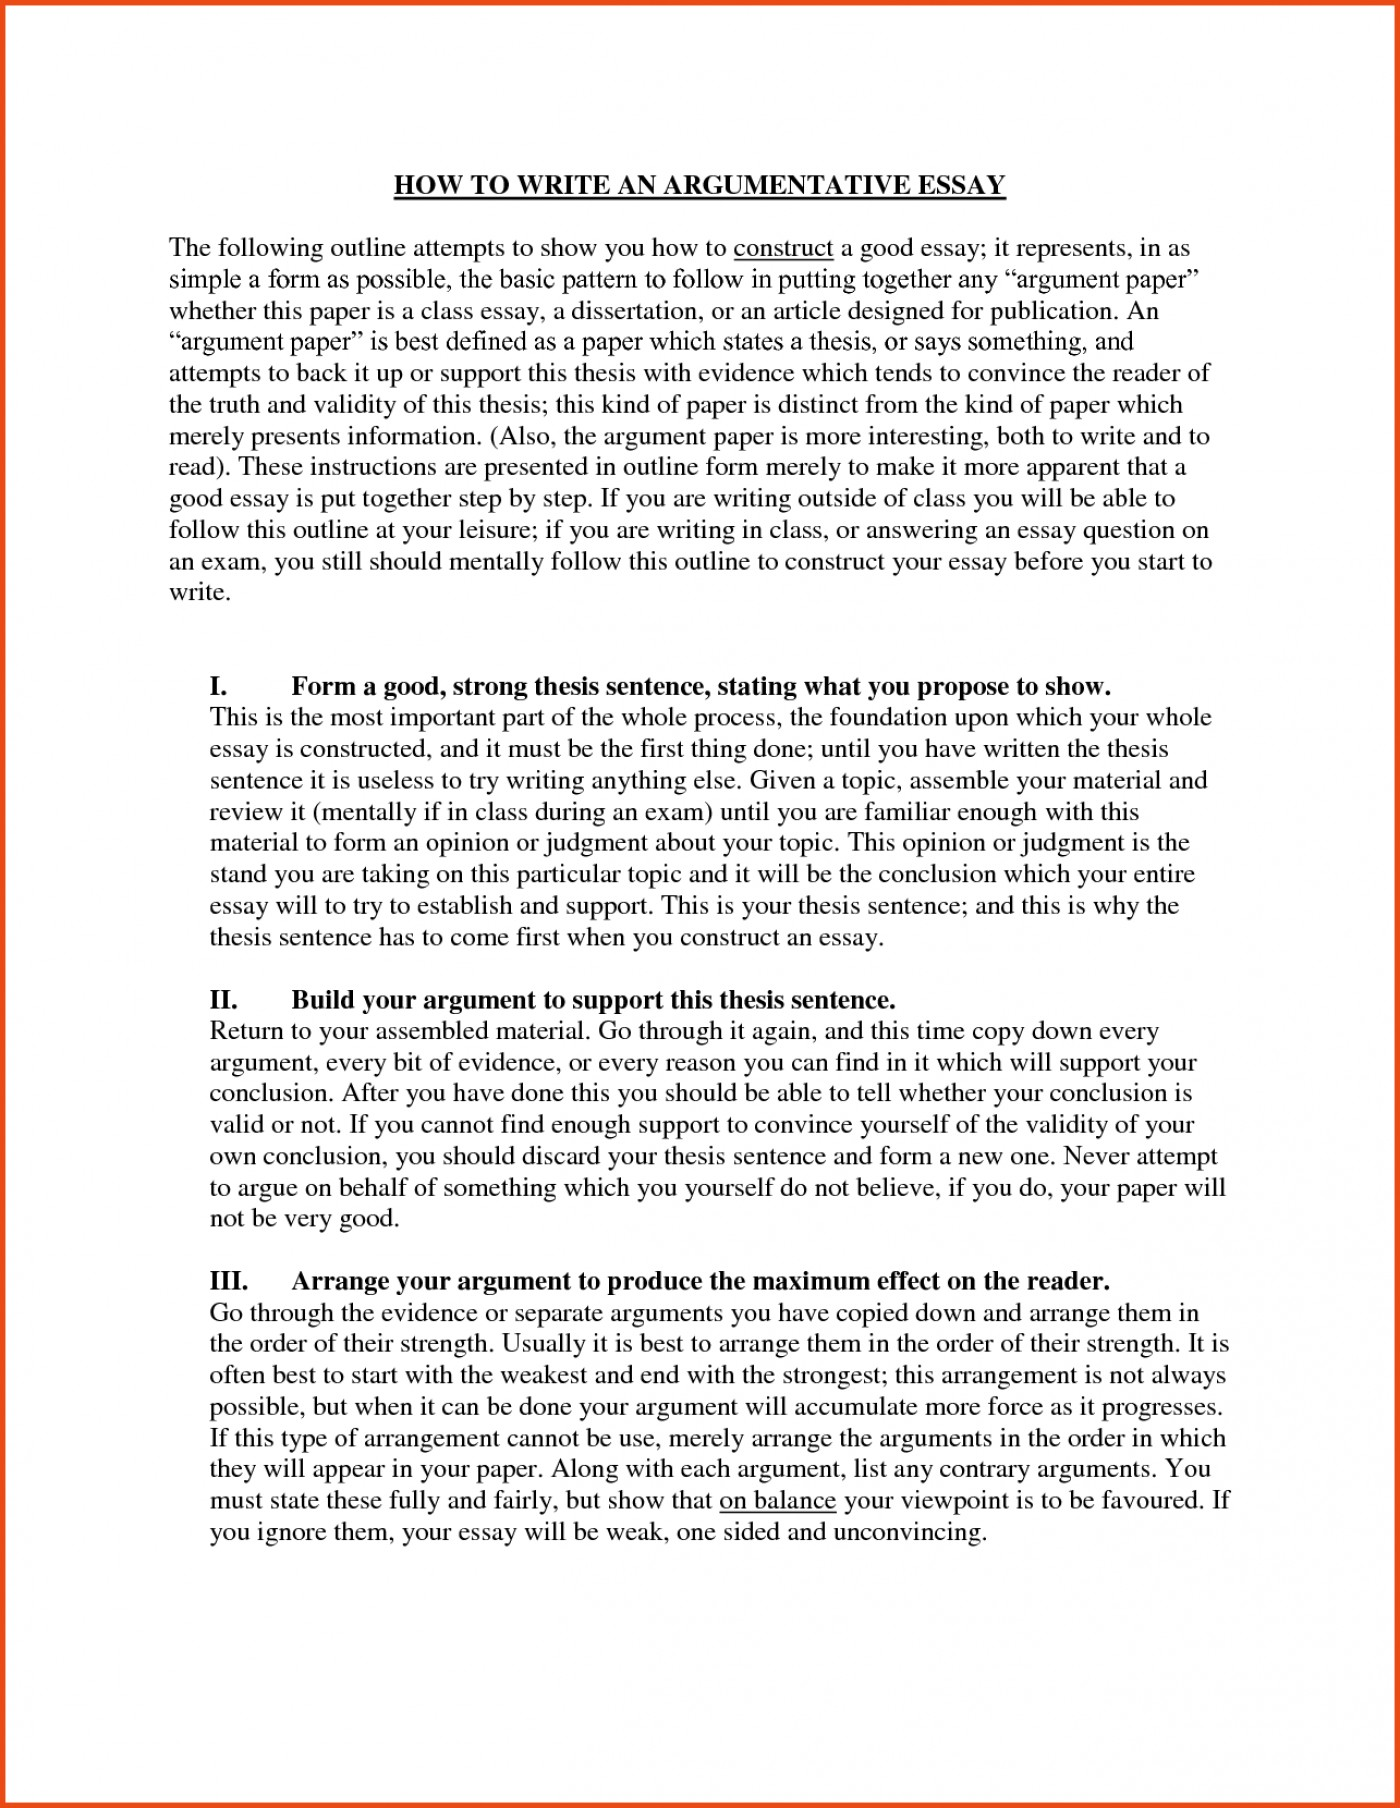 005 Essay Example How To Start An Brilliant Ideas Of Good Ways About Yourself Dissertation Nice Amazing Write A Paper On Climate Change Expository Examples With Quote Format 1400